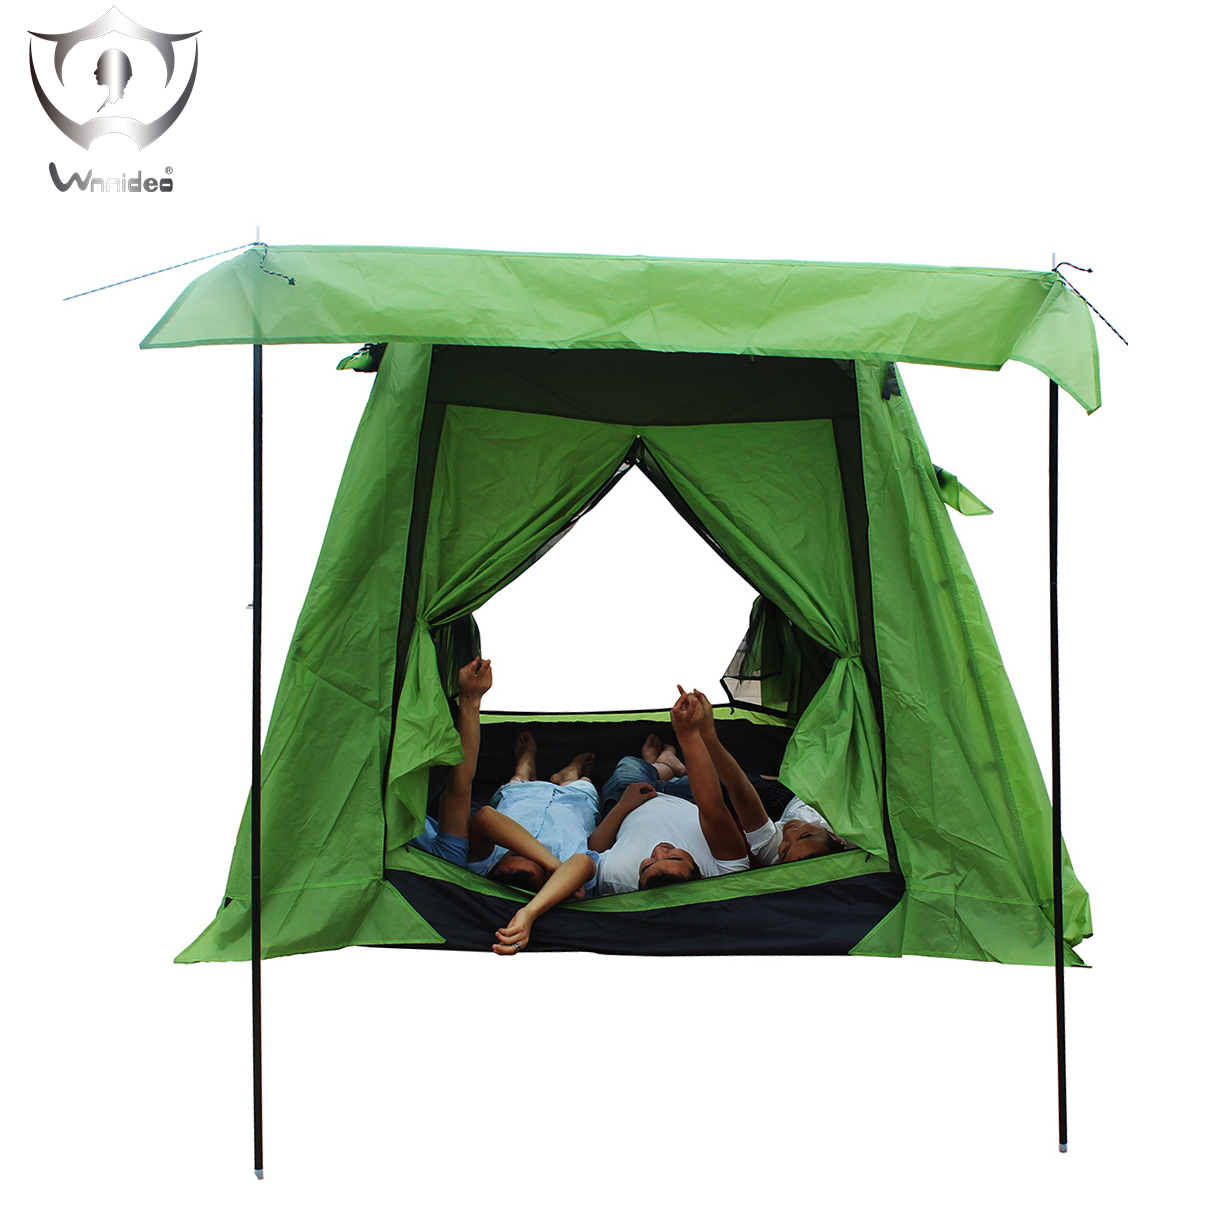 Wnnideo Outdoor Instant 3-4 Person Tent Double Layer Camping Tent One Bedroom One Living-room Waterproof 235*235 cm ZF6-2406 naturehike 3 person camping tent 20d 210t fabric waterproof double layer one bedroom 3 season aluminum rod outdoor camp tent